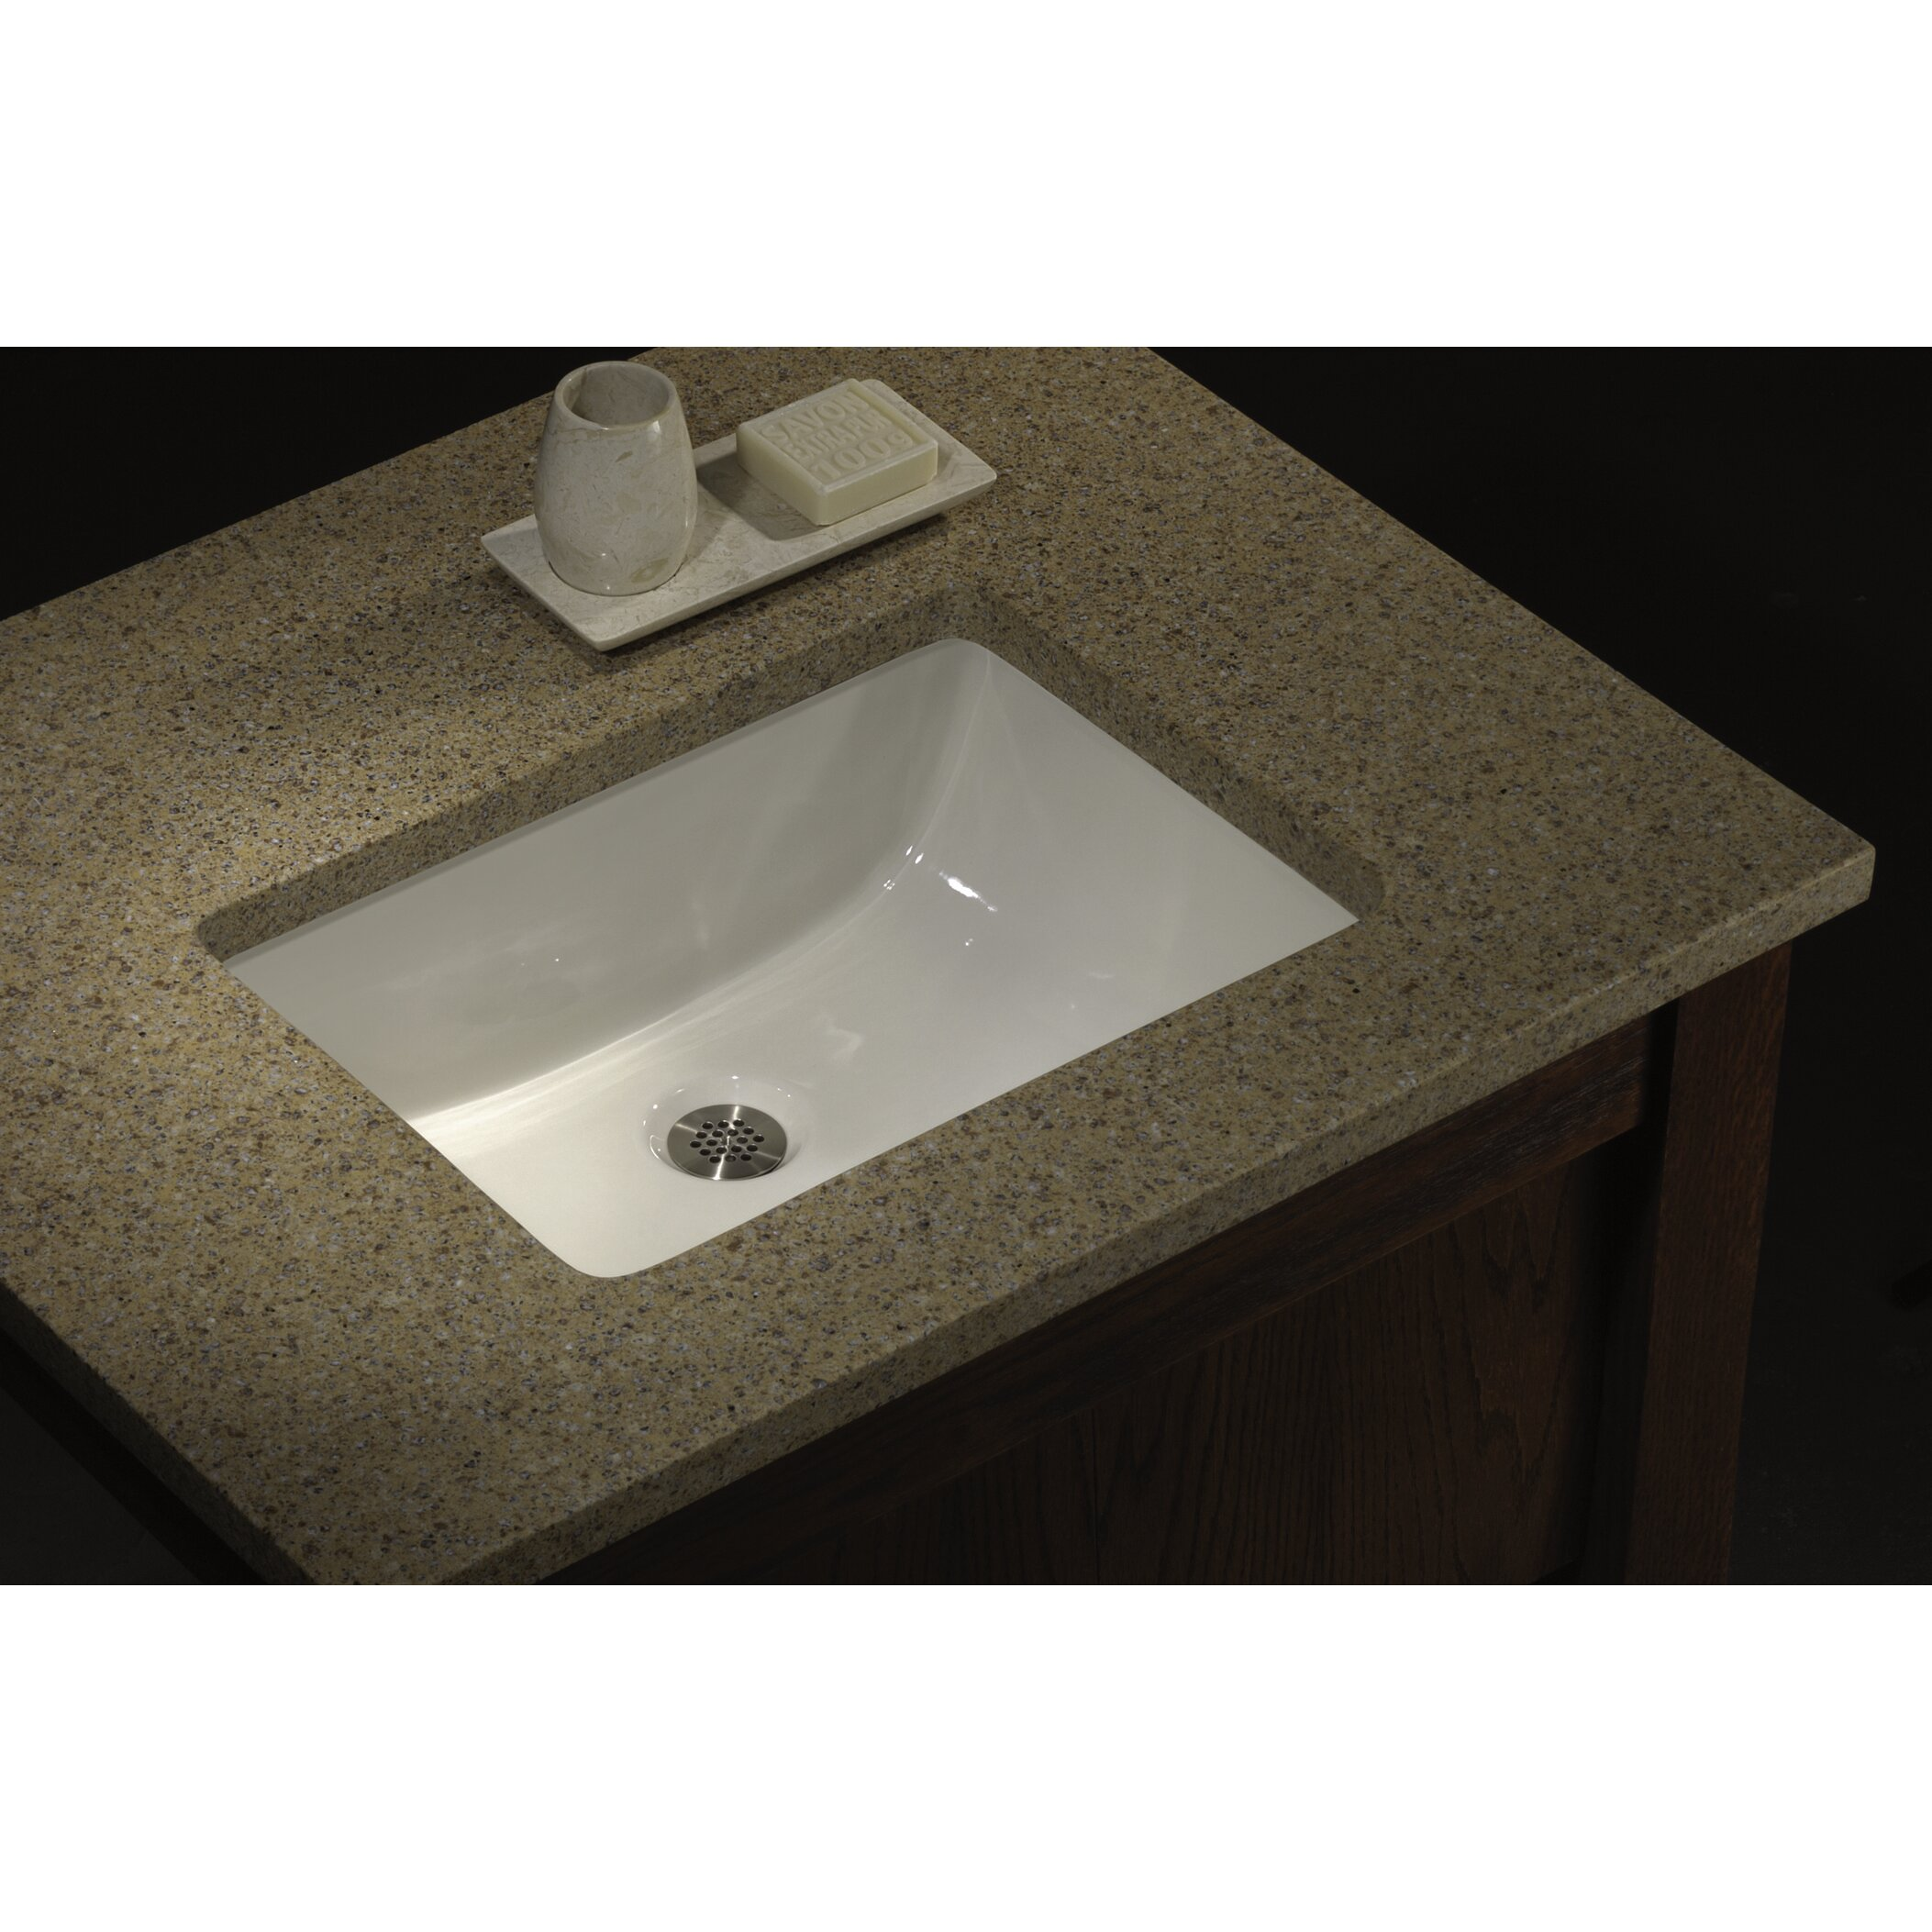 Lenova porcelain undermount bathroom sink wayfair for Bathroom undermount sinks